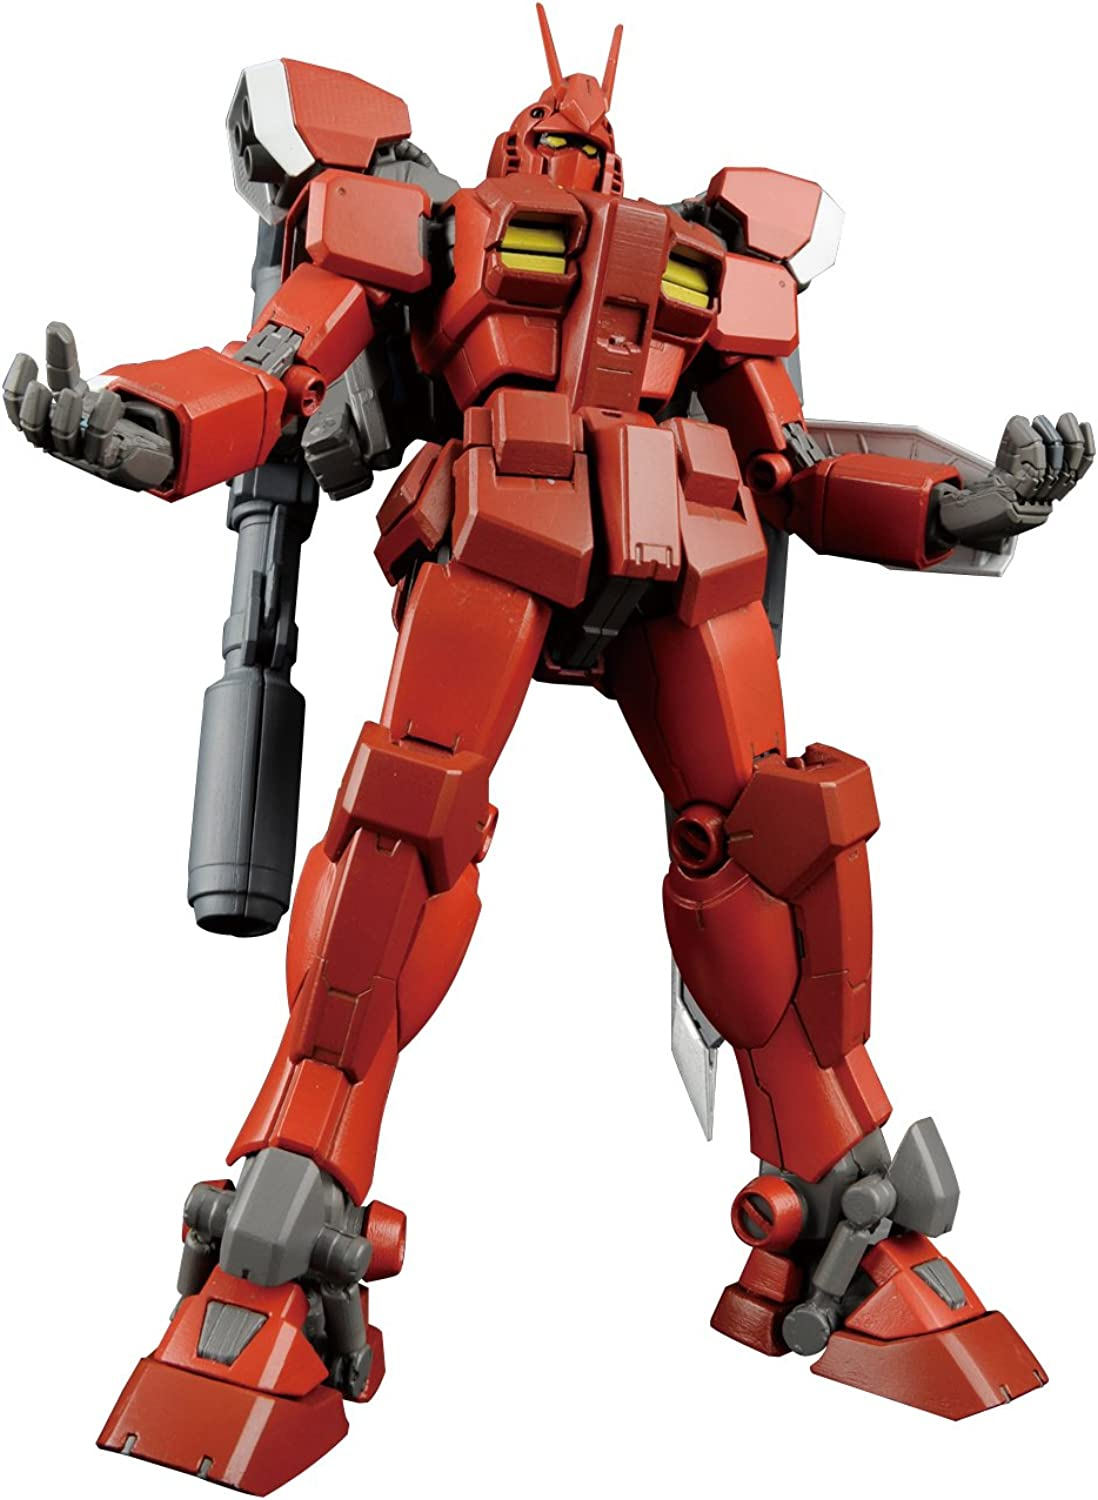 MG 1 100 Gundam Amazing rot Warrior (Gundam Build Fighters Tri)